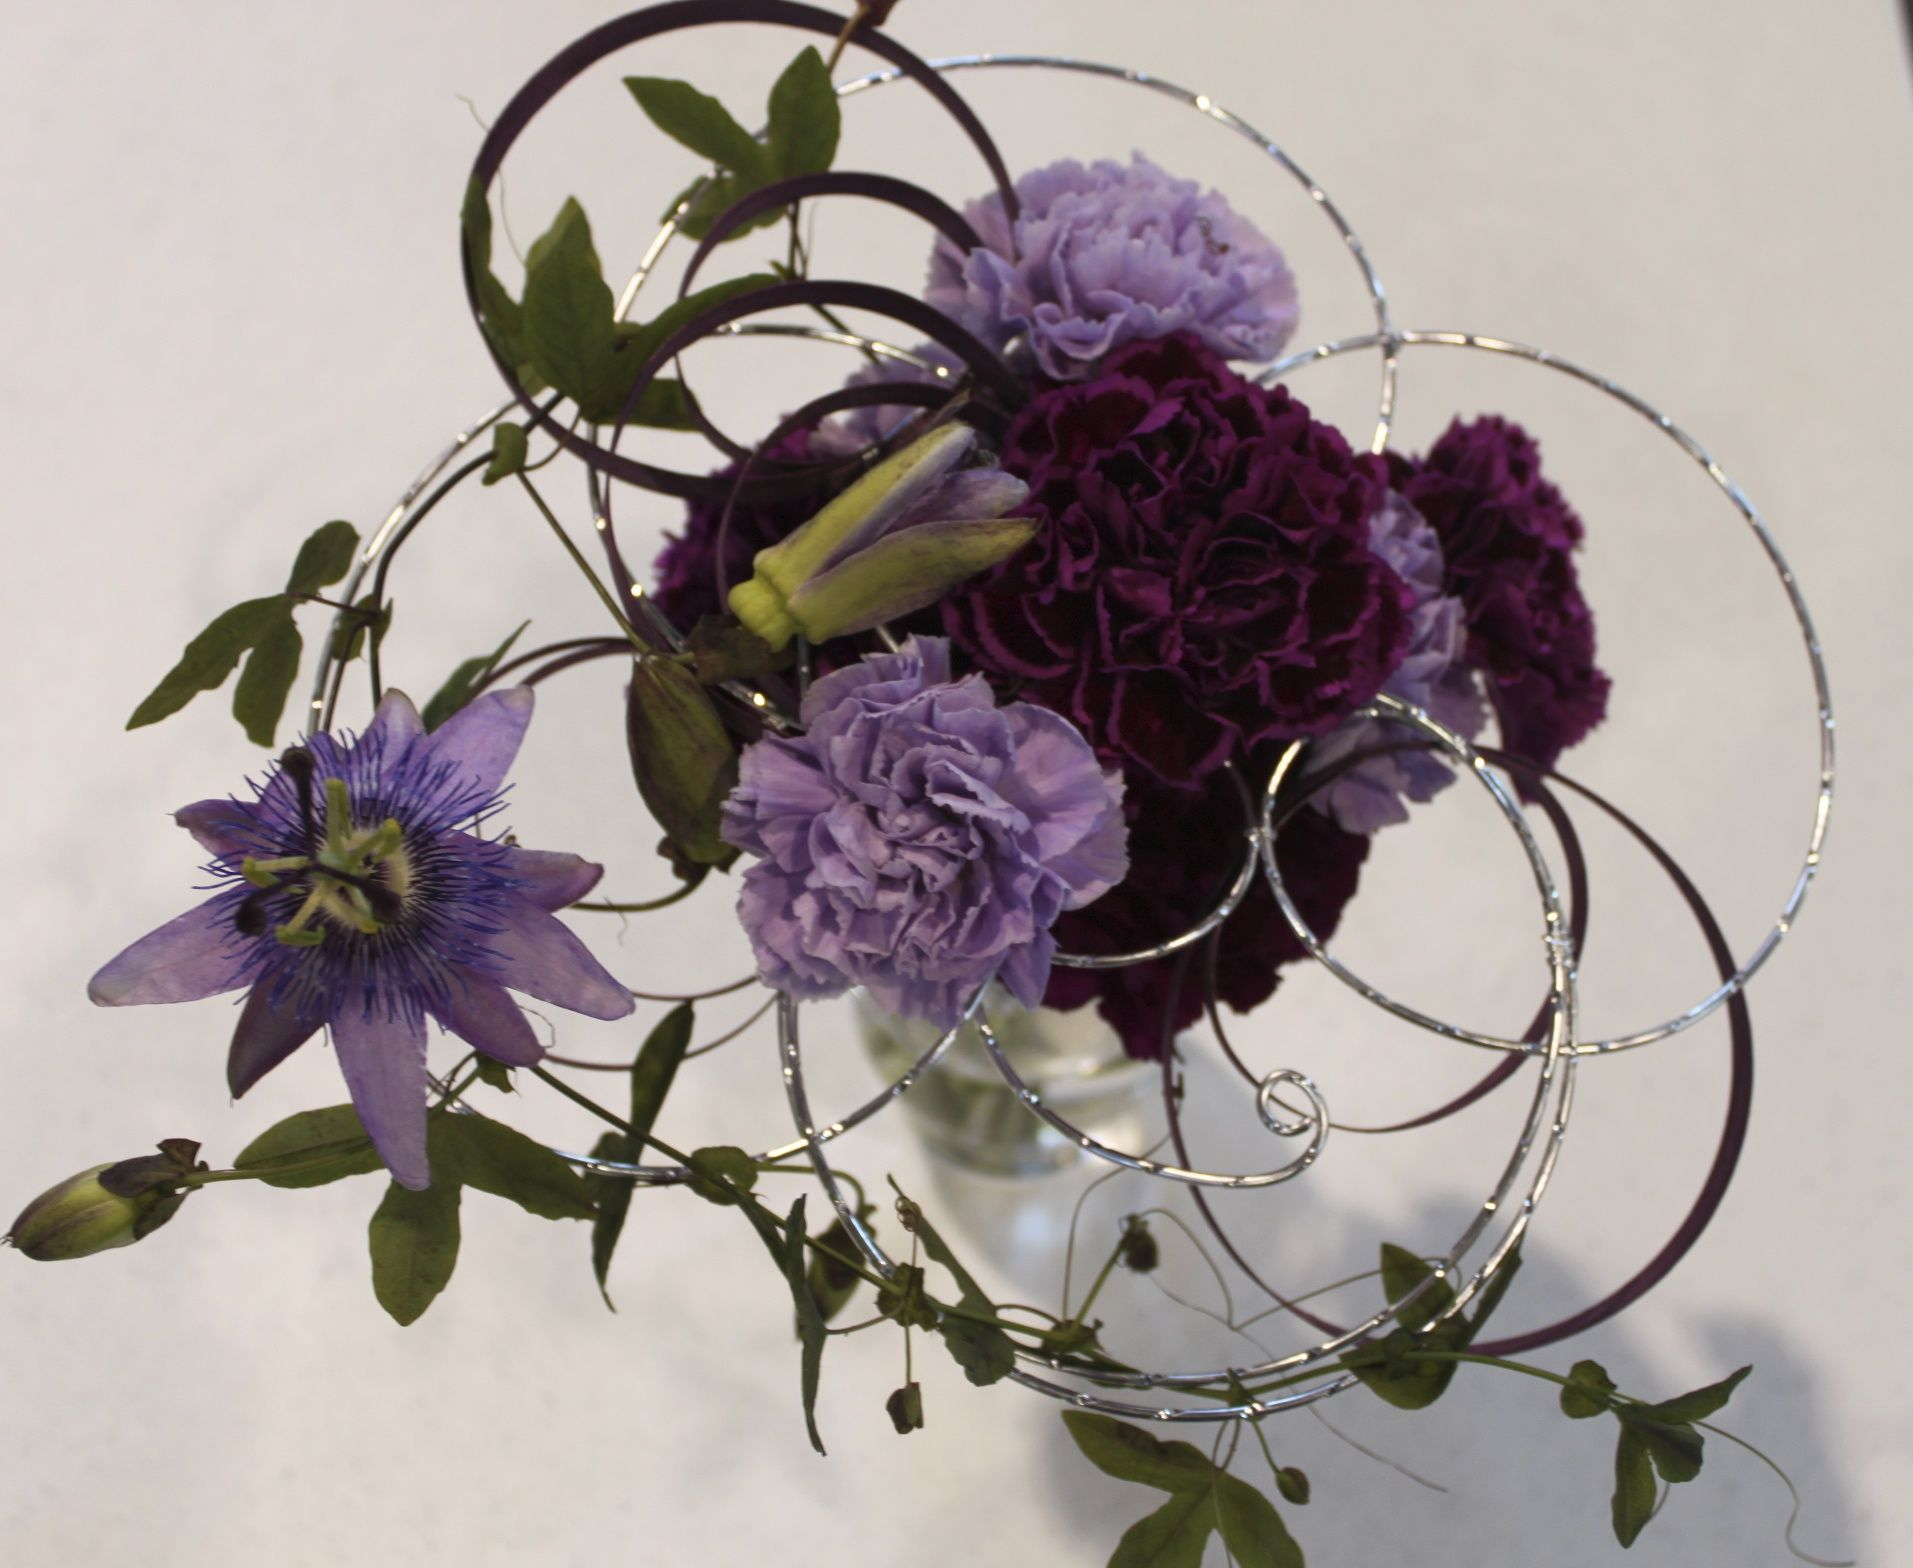 Dianthus and passion flower bouquet on diamond wire armature with aubergine flat cane circles